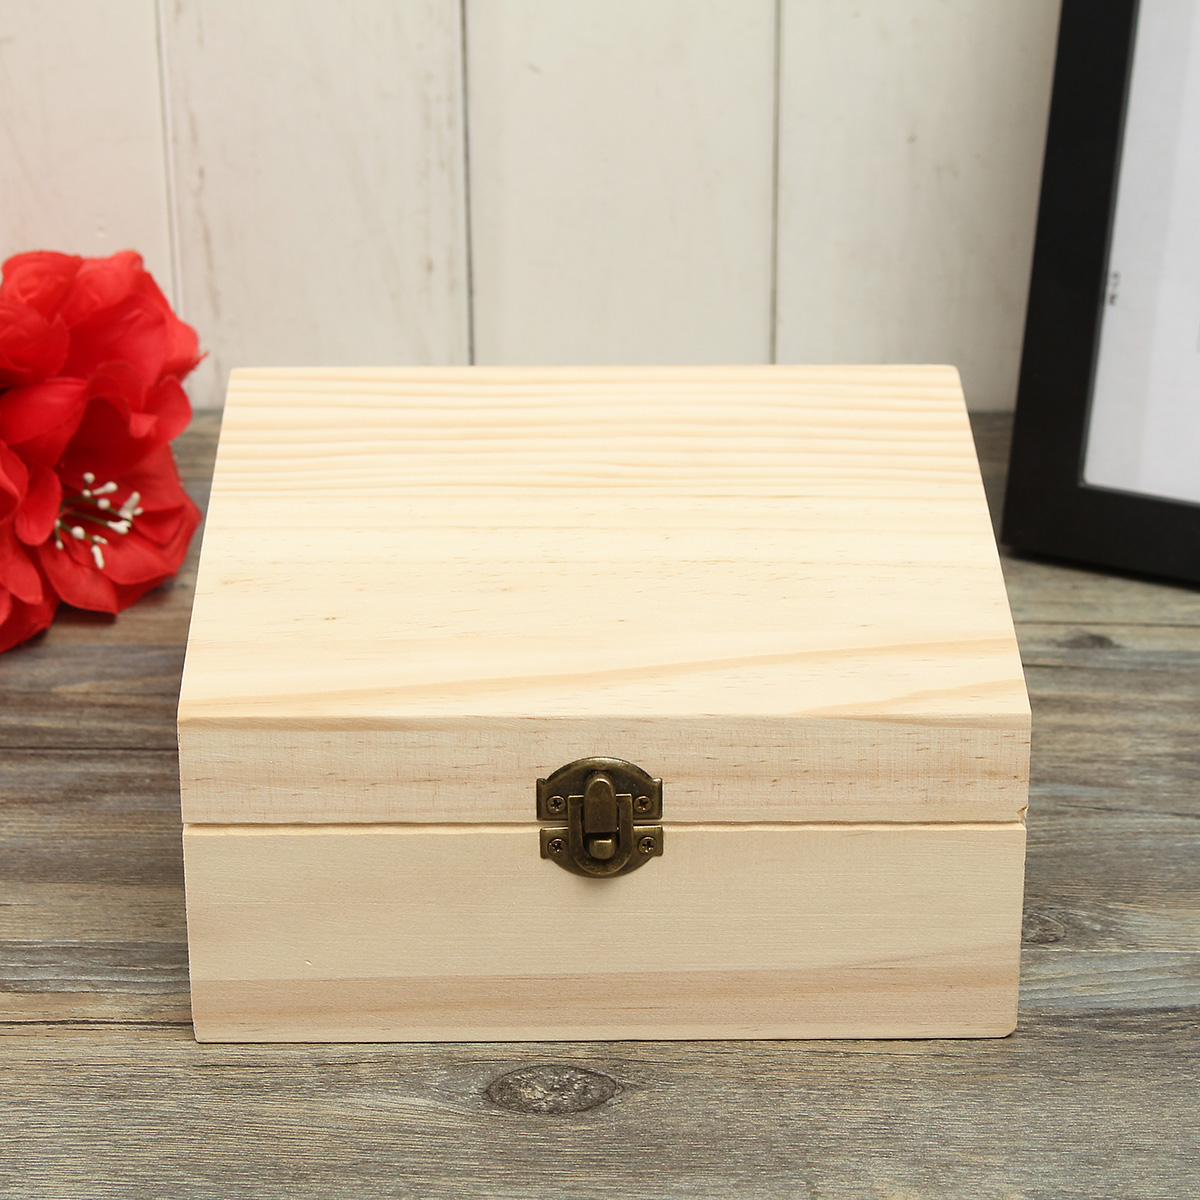 25 Holes Essential Oils Wooden Box Container Solid Pine Pure Natural Wood Storage Case